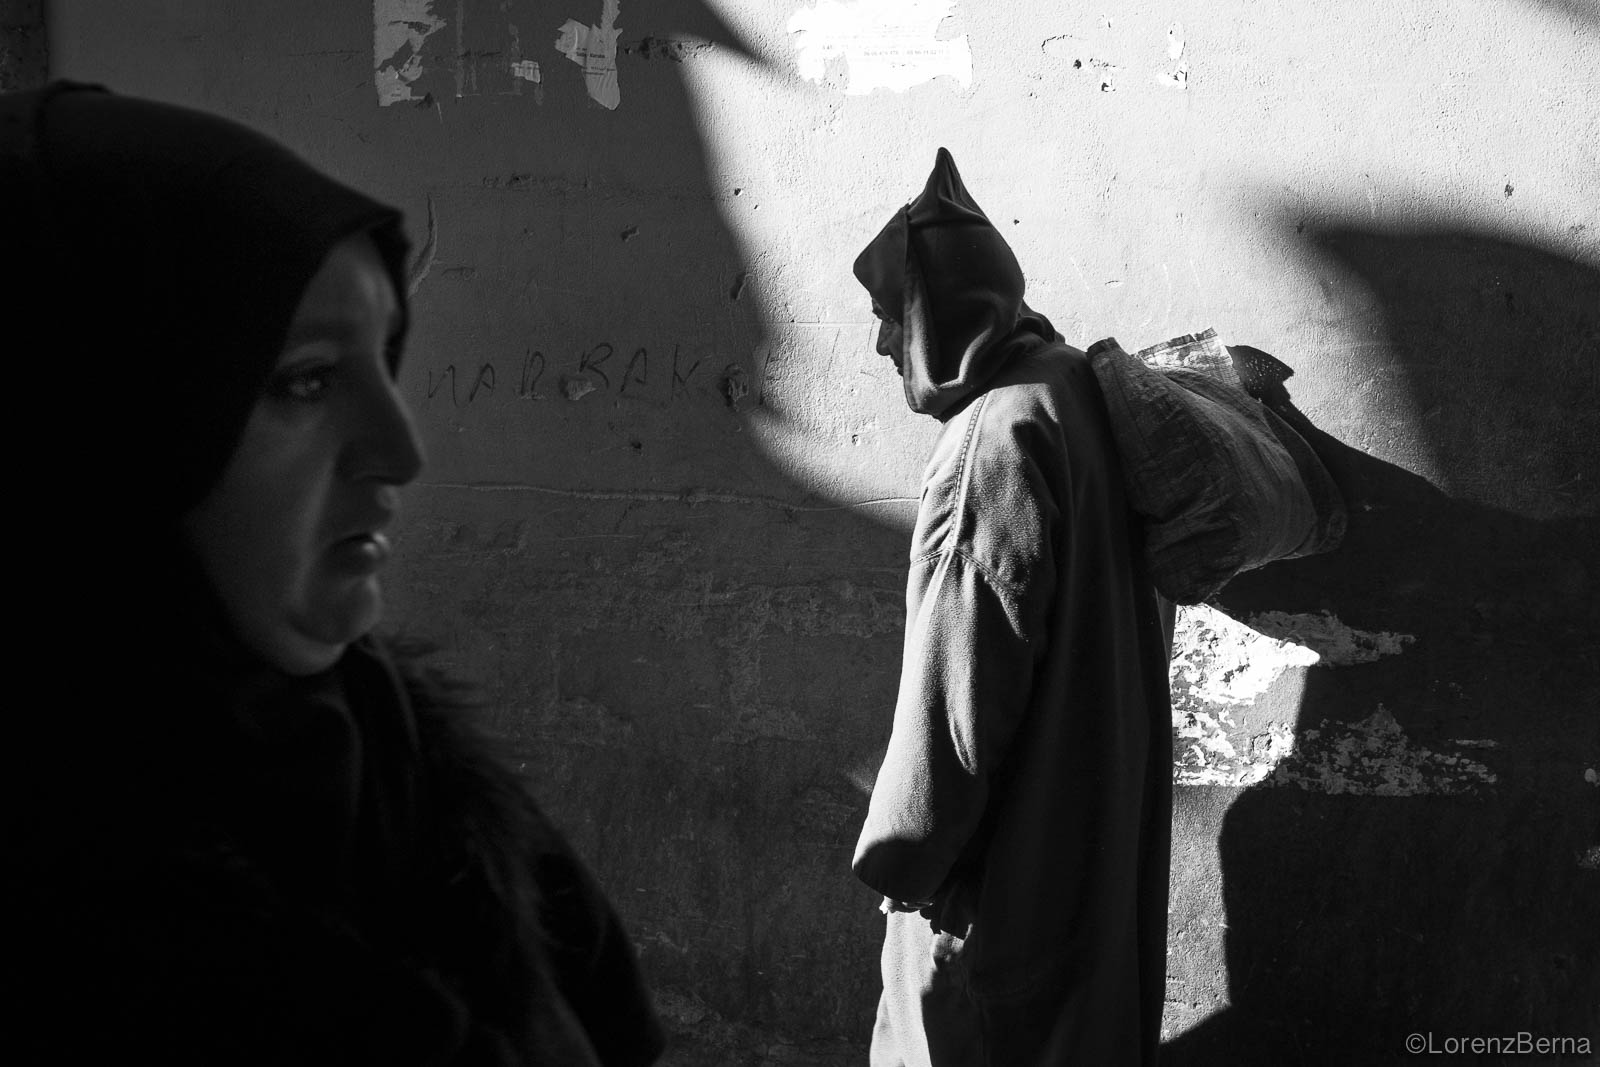 The pointed, hooded moroccan djellaba in silhouette, Morocco photos.